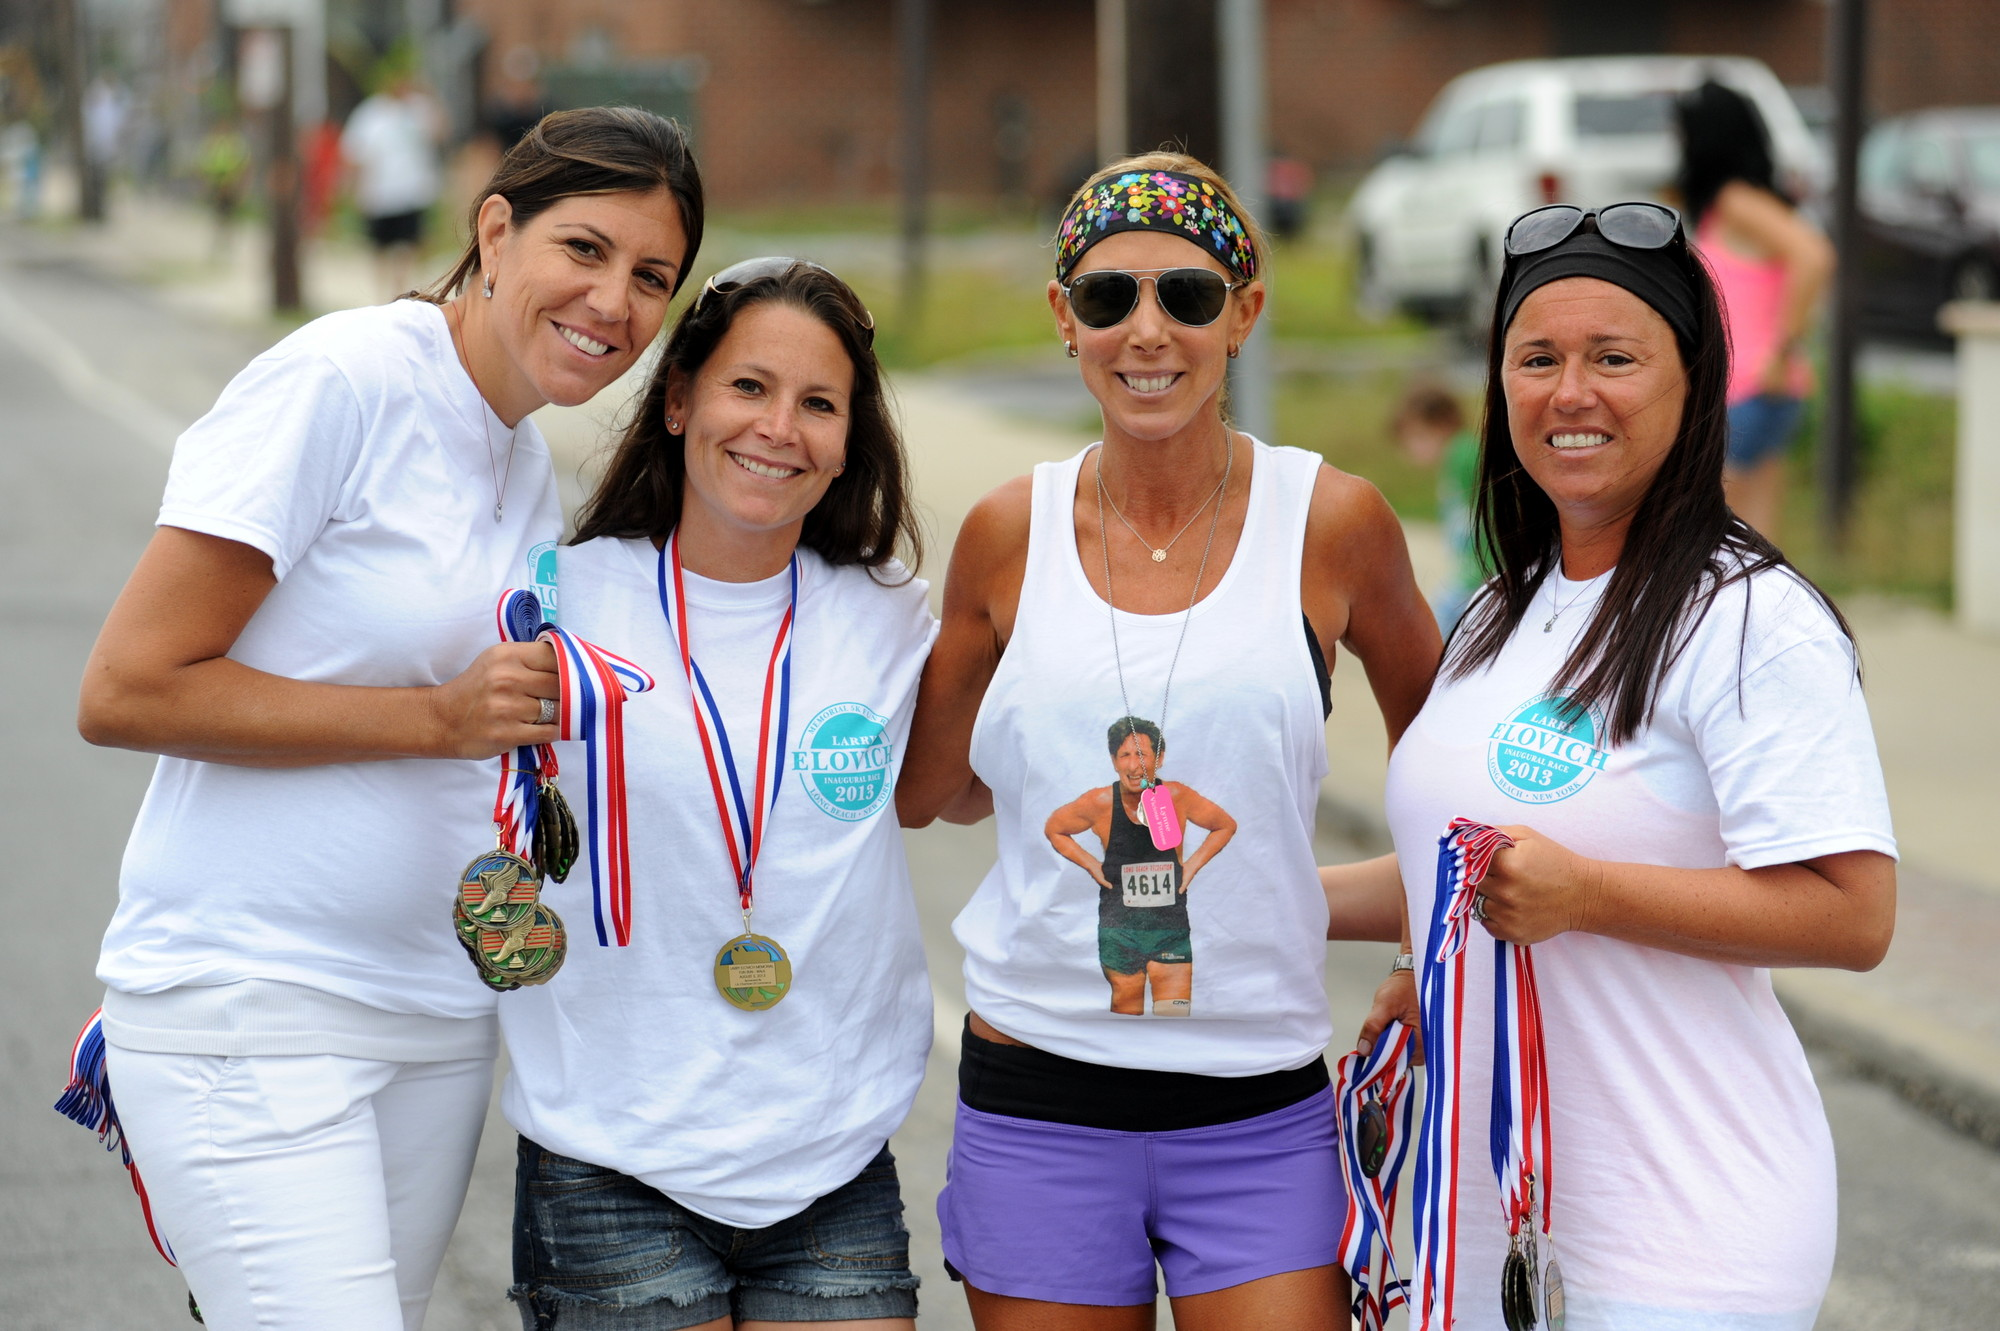 Laura Borawski, far left, Jill Backlin, Elovich's daughter Lynn Eisenberg and Fran Matkin rewarded the runners with gold medals.